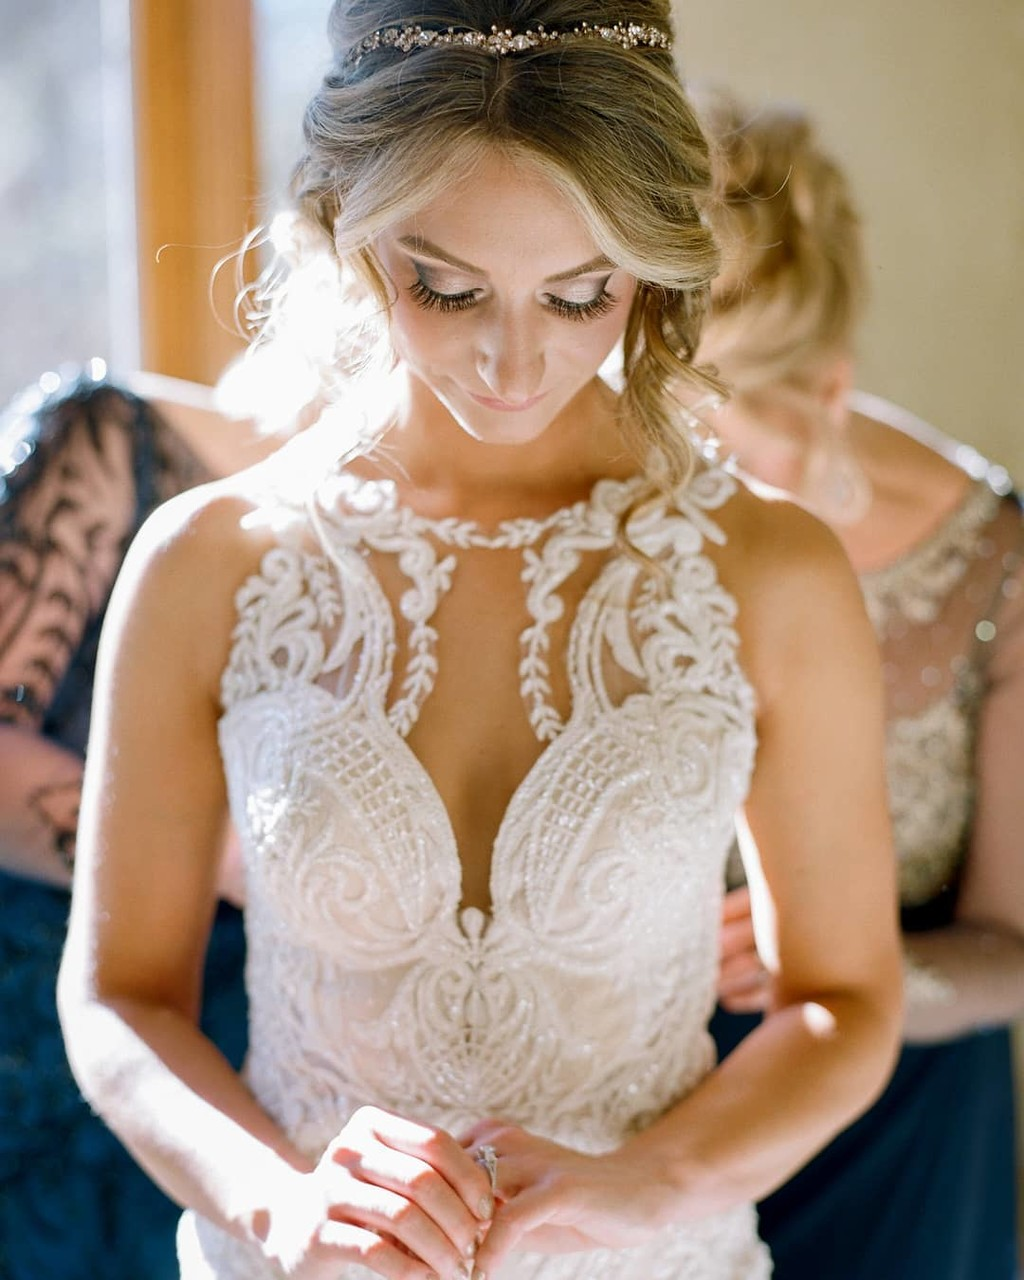 Love moments like this - a bride admiring her engagement ring moments before walking down the aisle 💕 Did you know that different